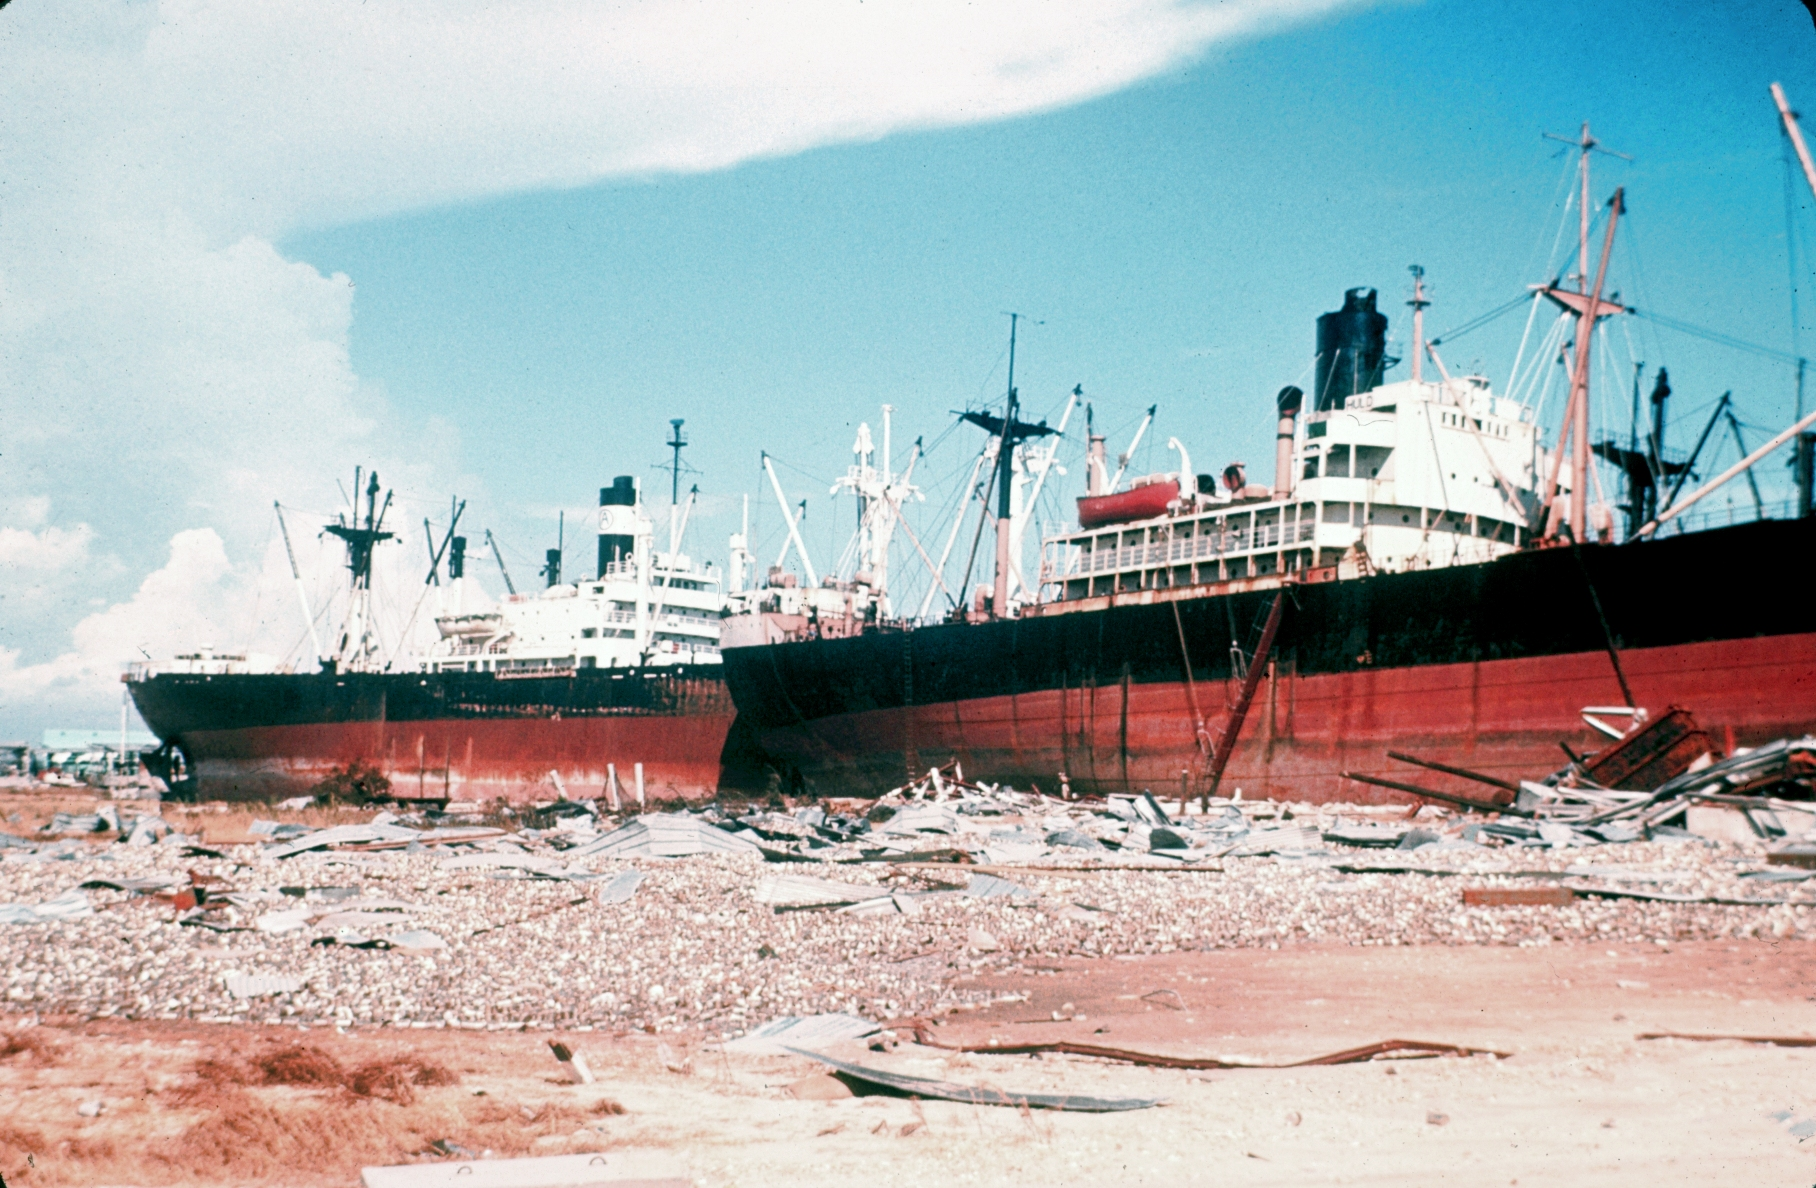 description on a shipwreck Description of the ship klm euphoria is a sailing ship built in traditional to south celebes finisi style it was made of the noblest species of tropical wood (teak, iron wood, merbau).